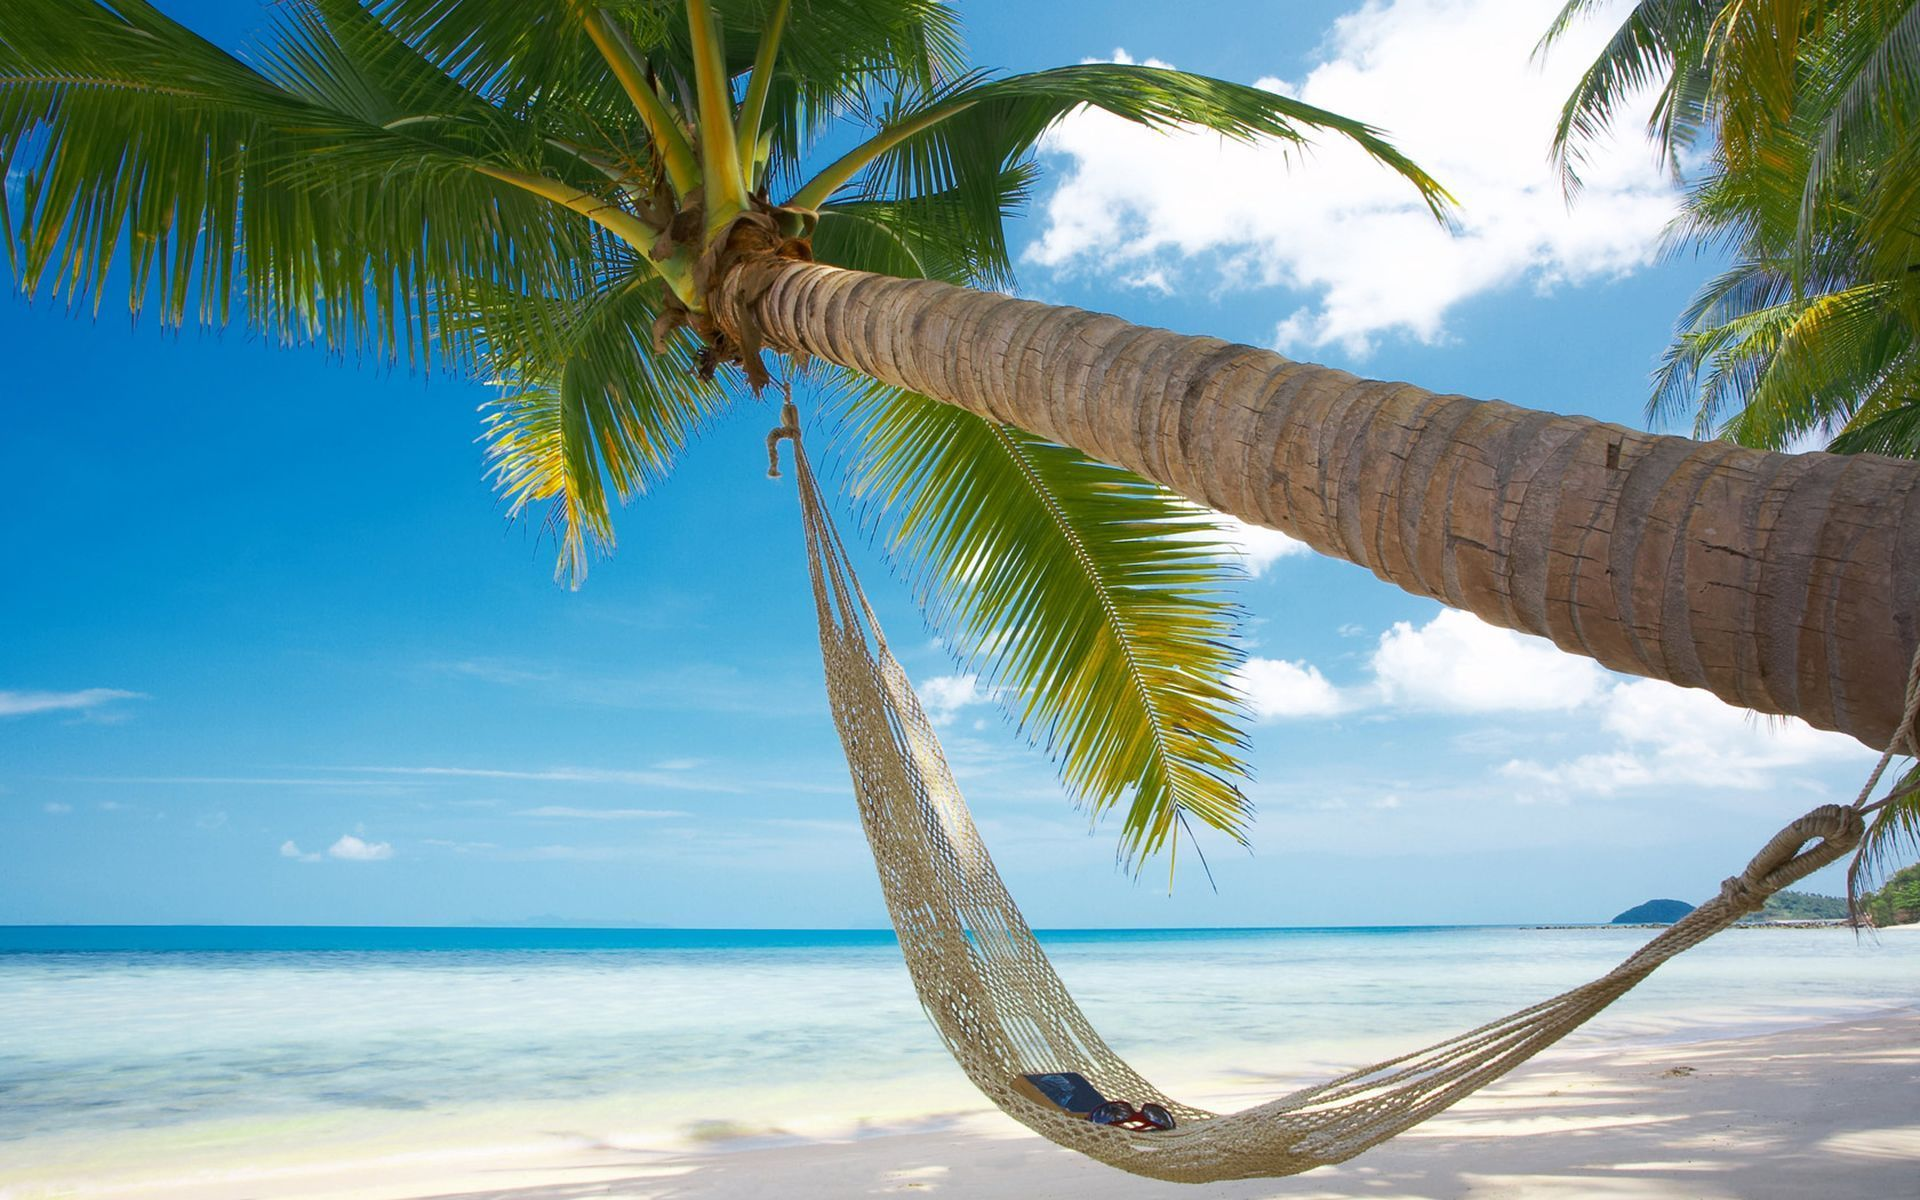 Beach palm hammock